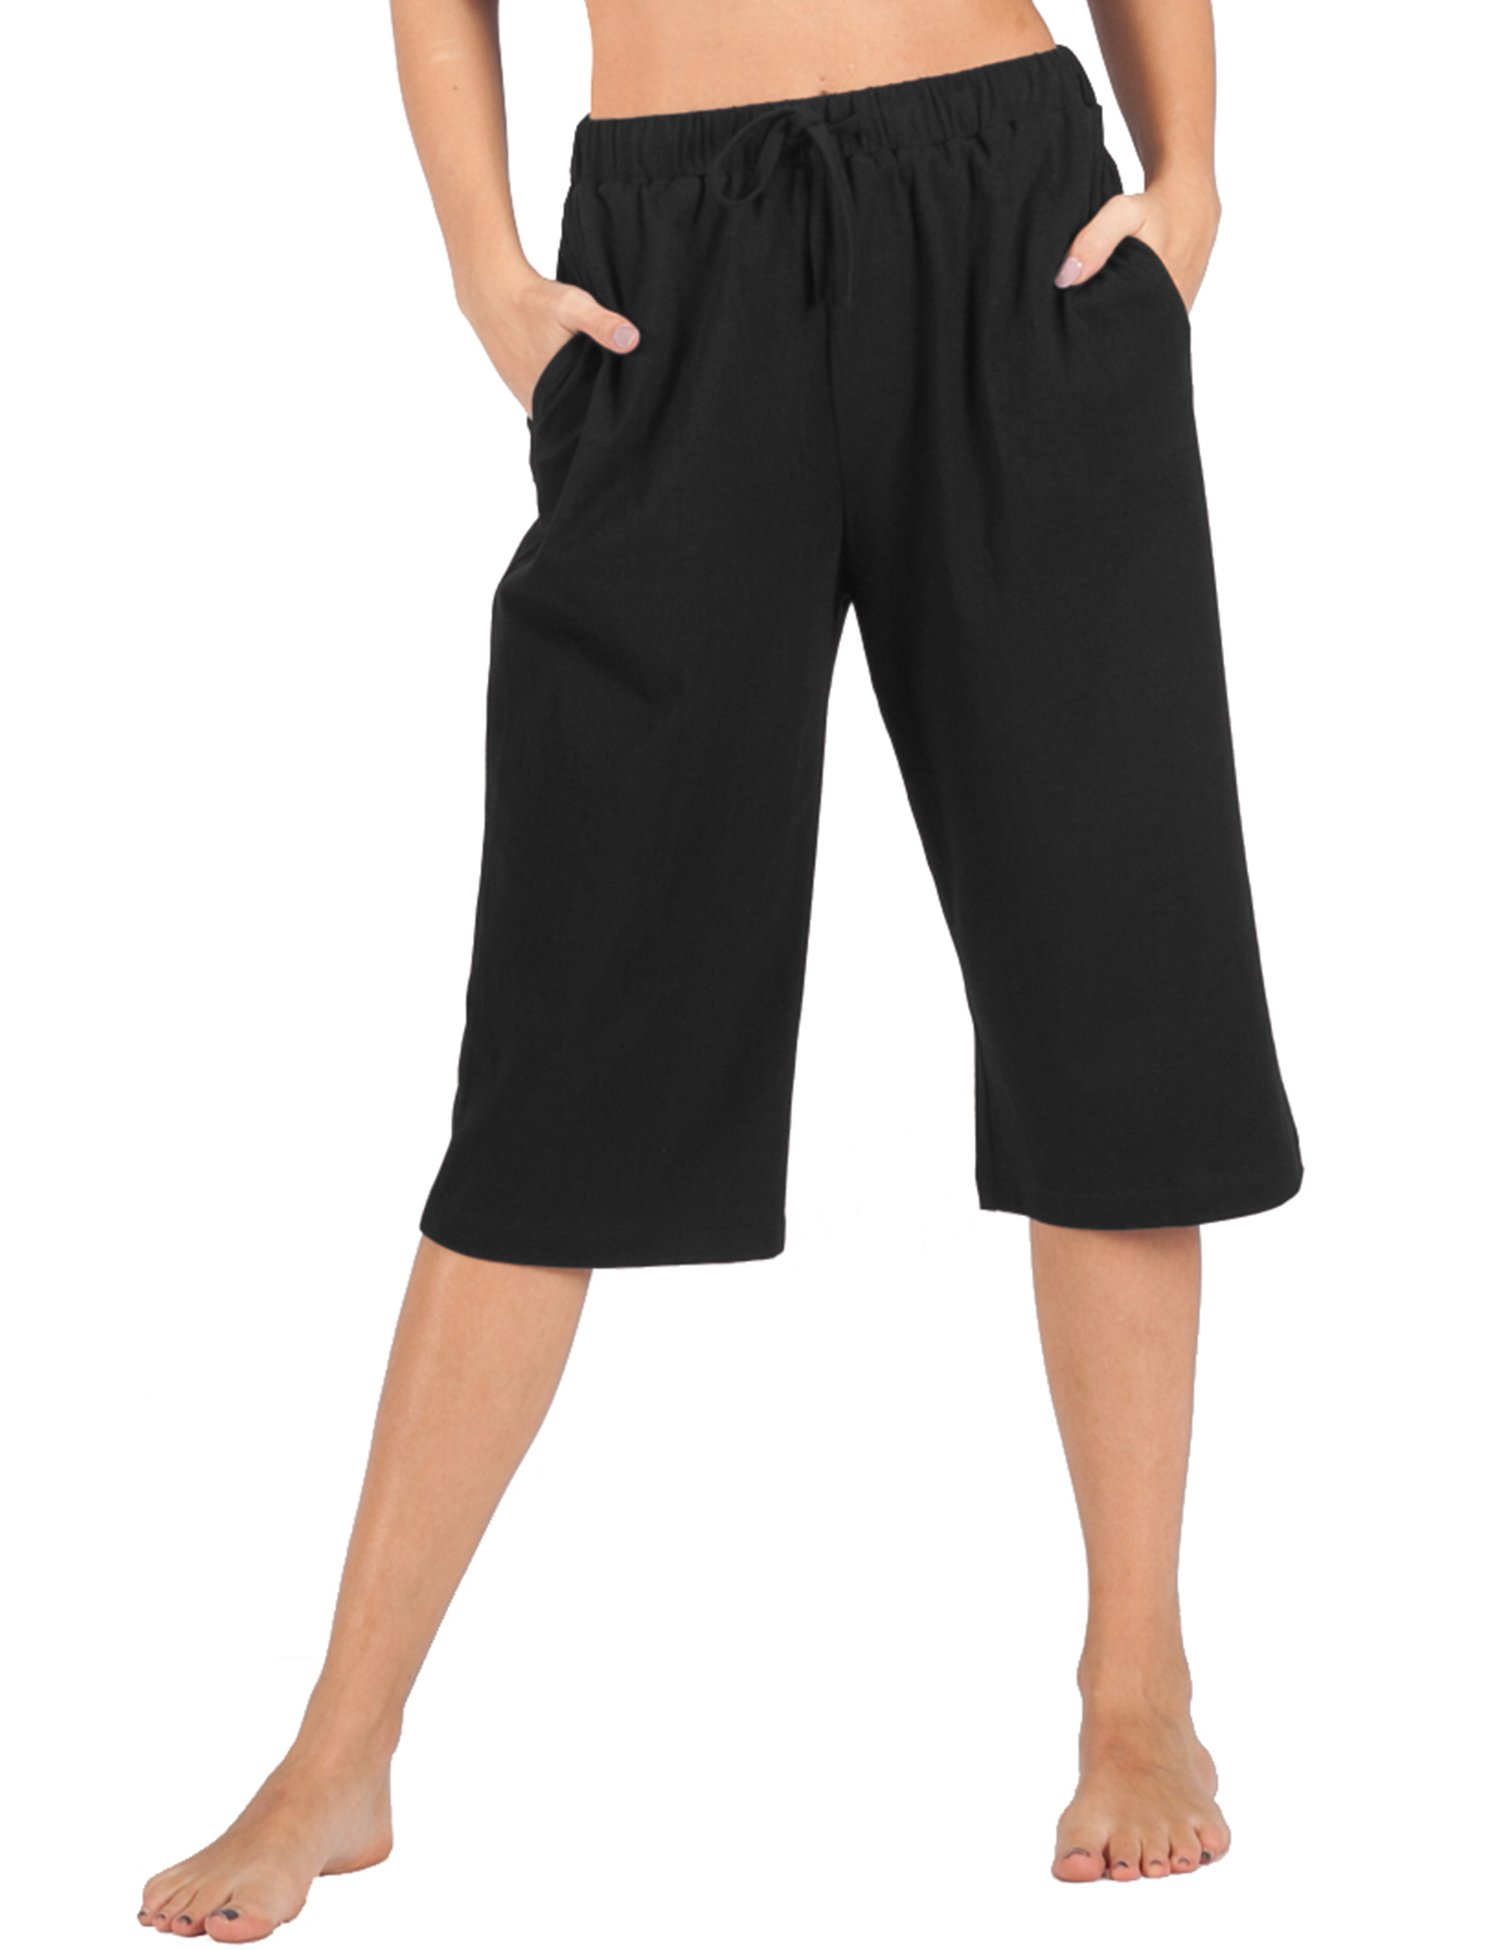 WEWINK CUKOO 100% Cotton Women Pajama Capri Pants Lounge Pants Pockets Sleepwear (XXL=US 20-22, Black)